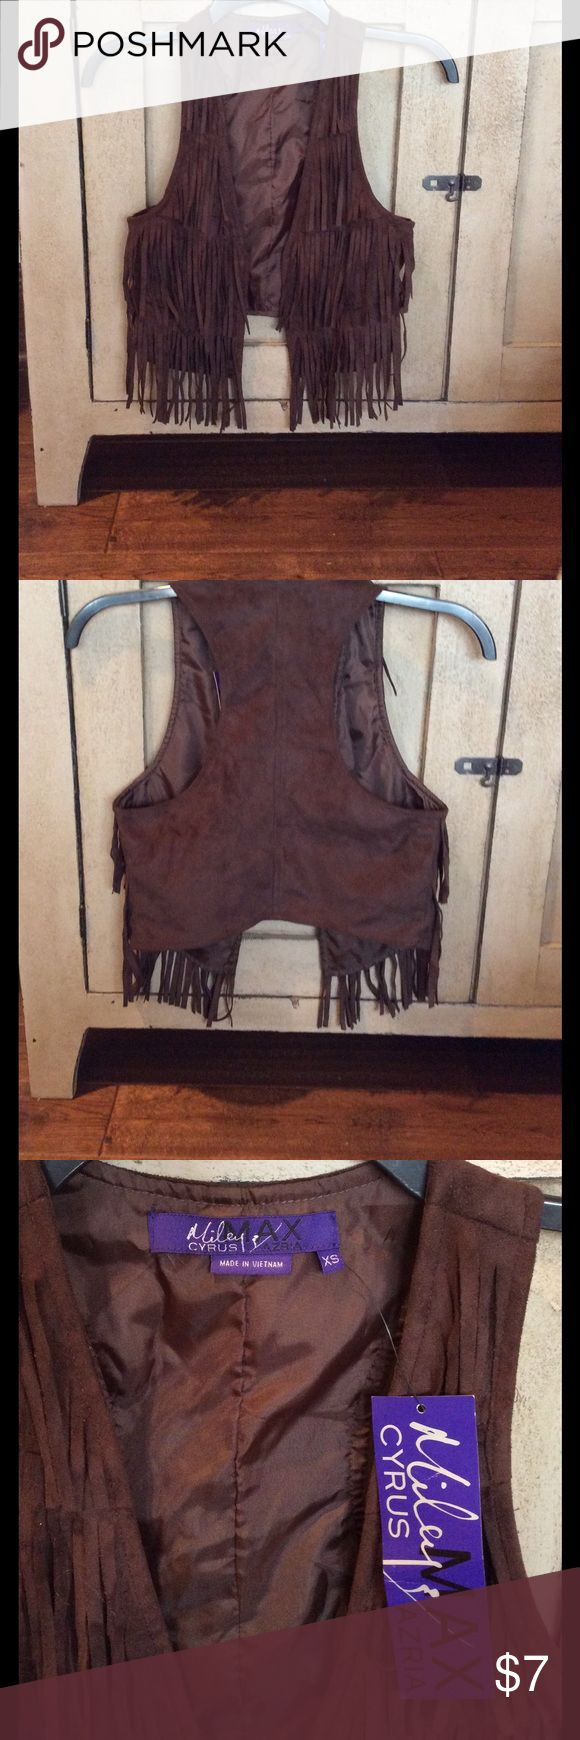 Brown western vest, XS, NWT, Miley Cyrus brand. Soft suede like fabric brown western fringed vest. NWT, XS. Great for costume or dress up. miley cyrus Costumes Halloween